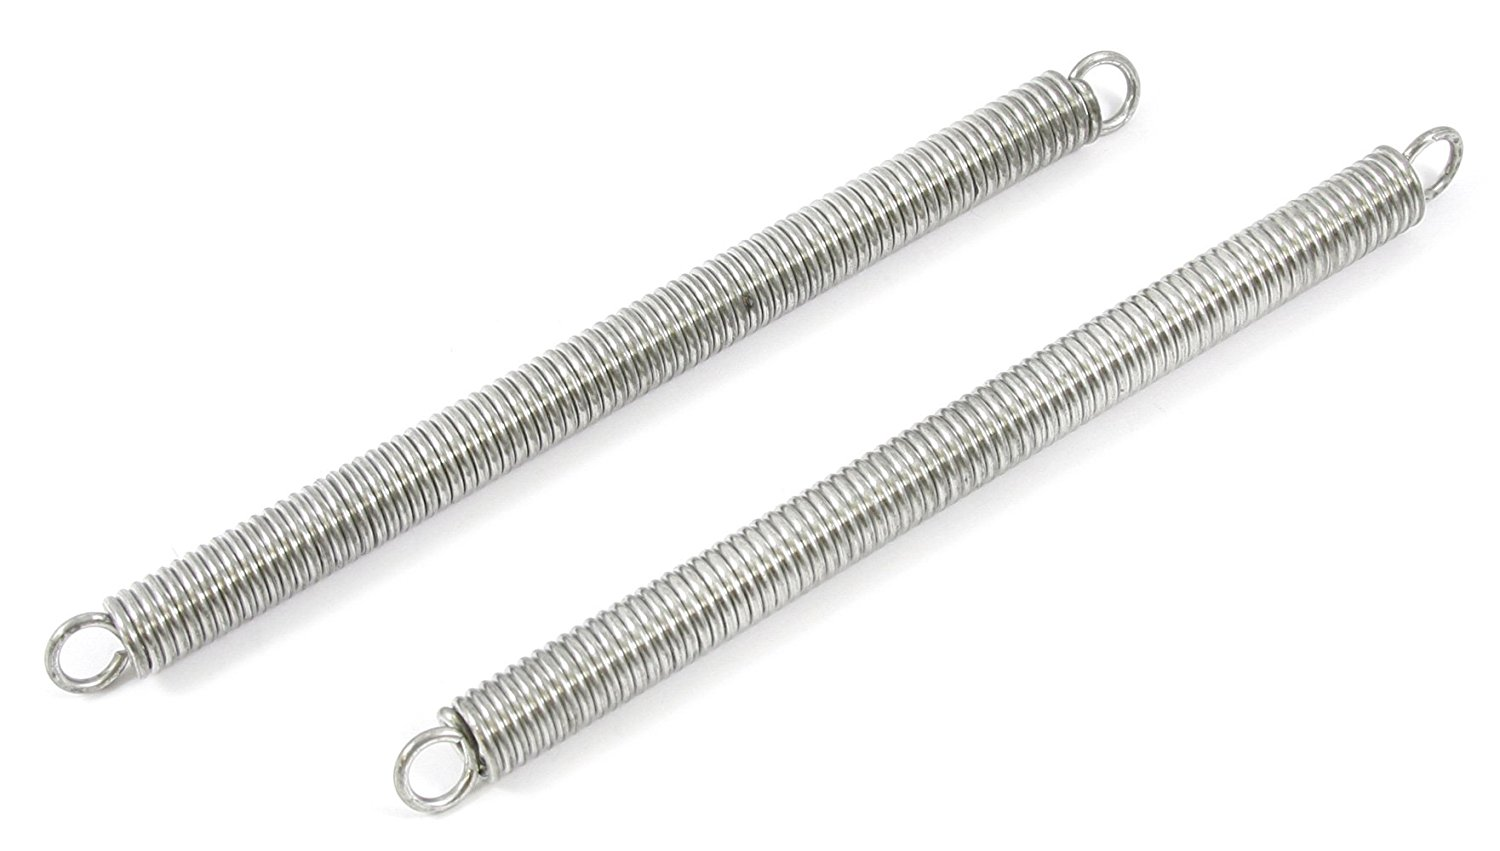 Forney 72578 Wire Spring Extension, 3/8-Inch-by-5-1/2-Inch-by-.062-Inch, 2-Pack